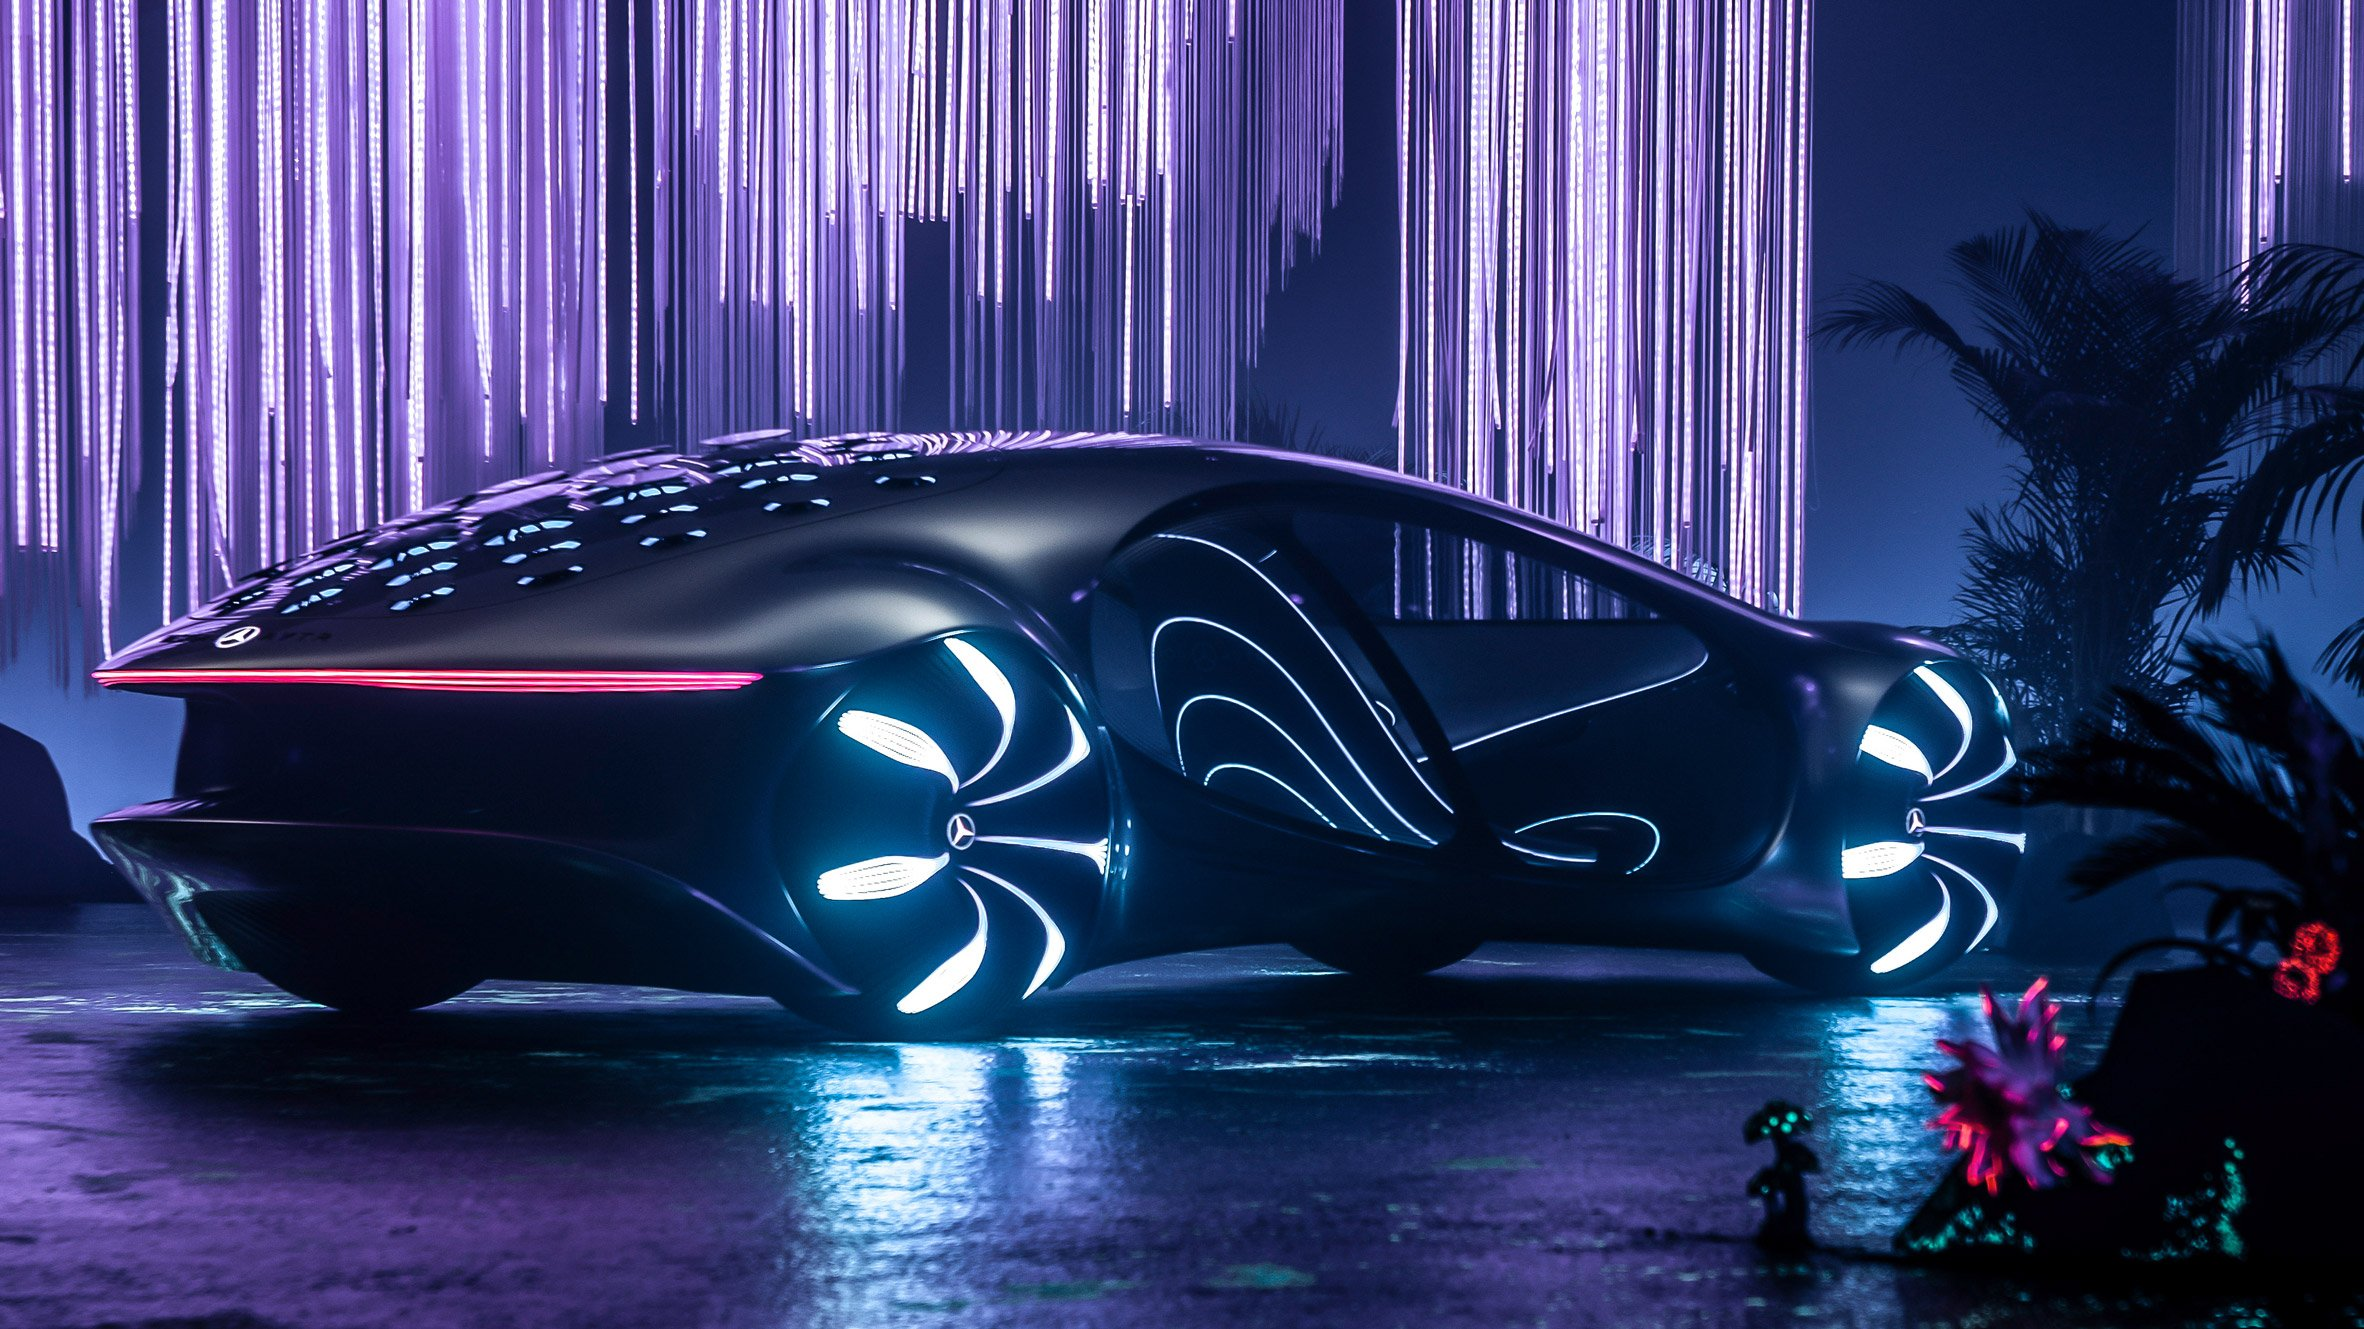 This week, carmakers envisioned the future of transport at CES - Dezeen